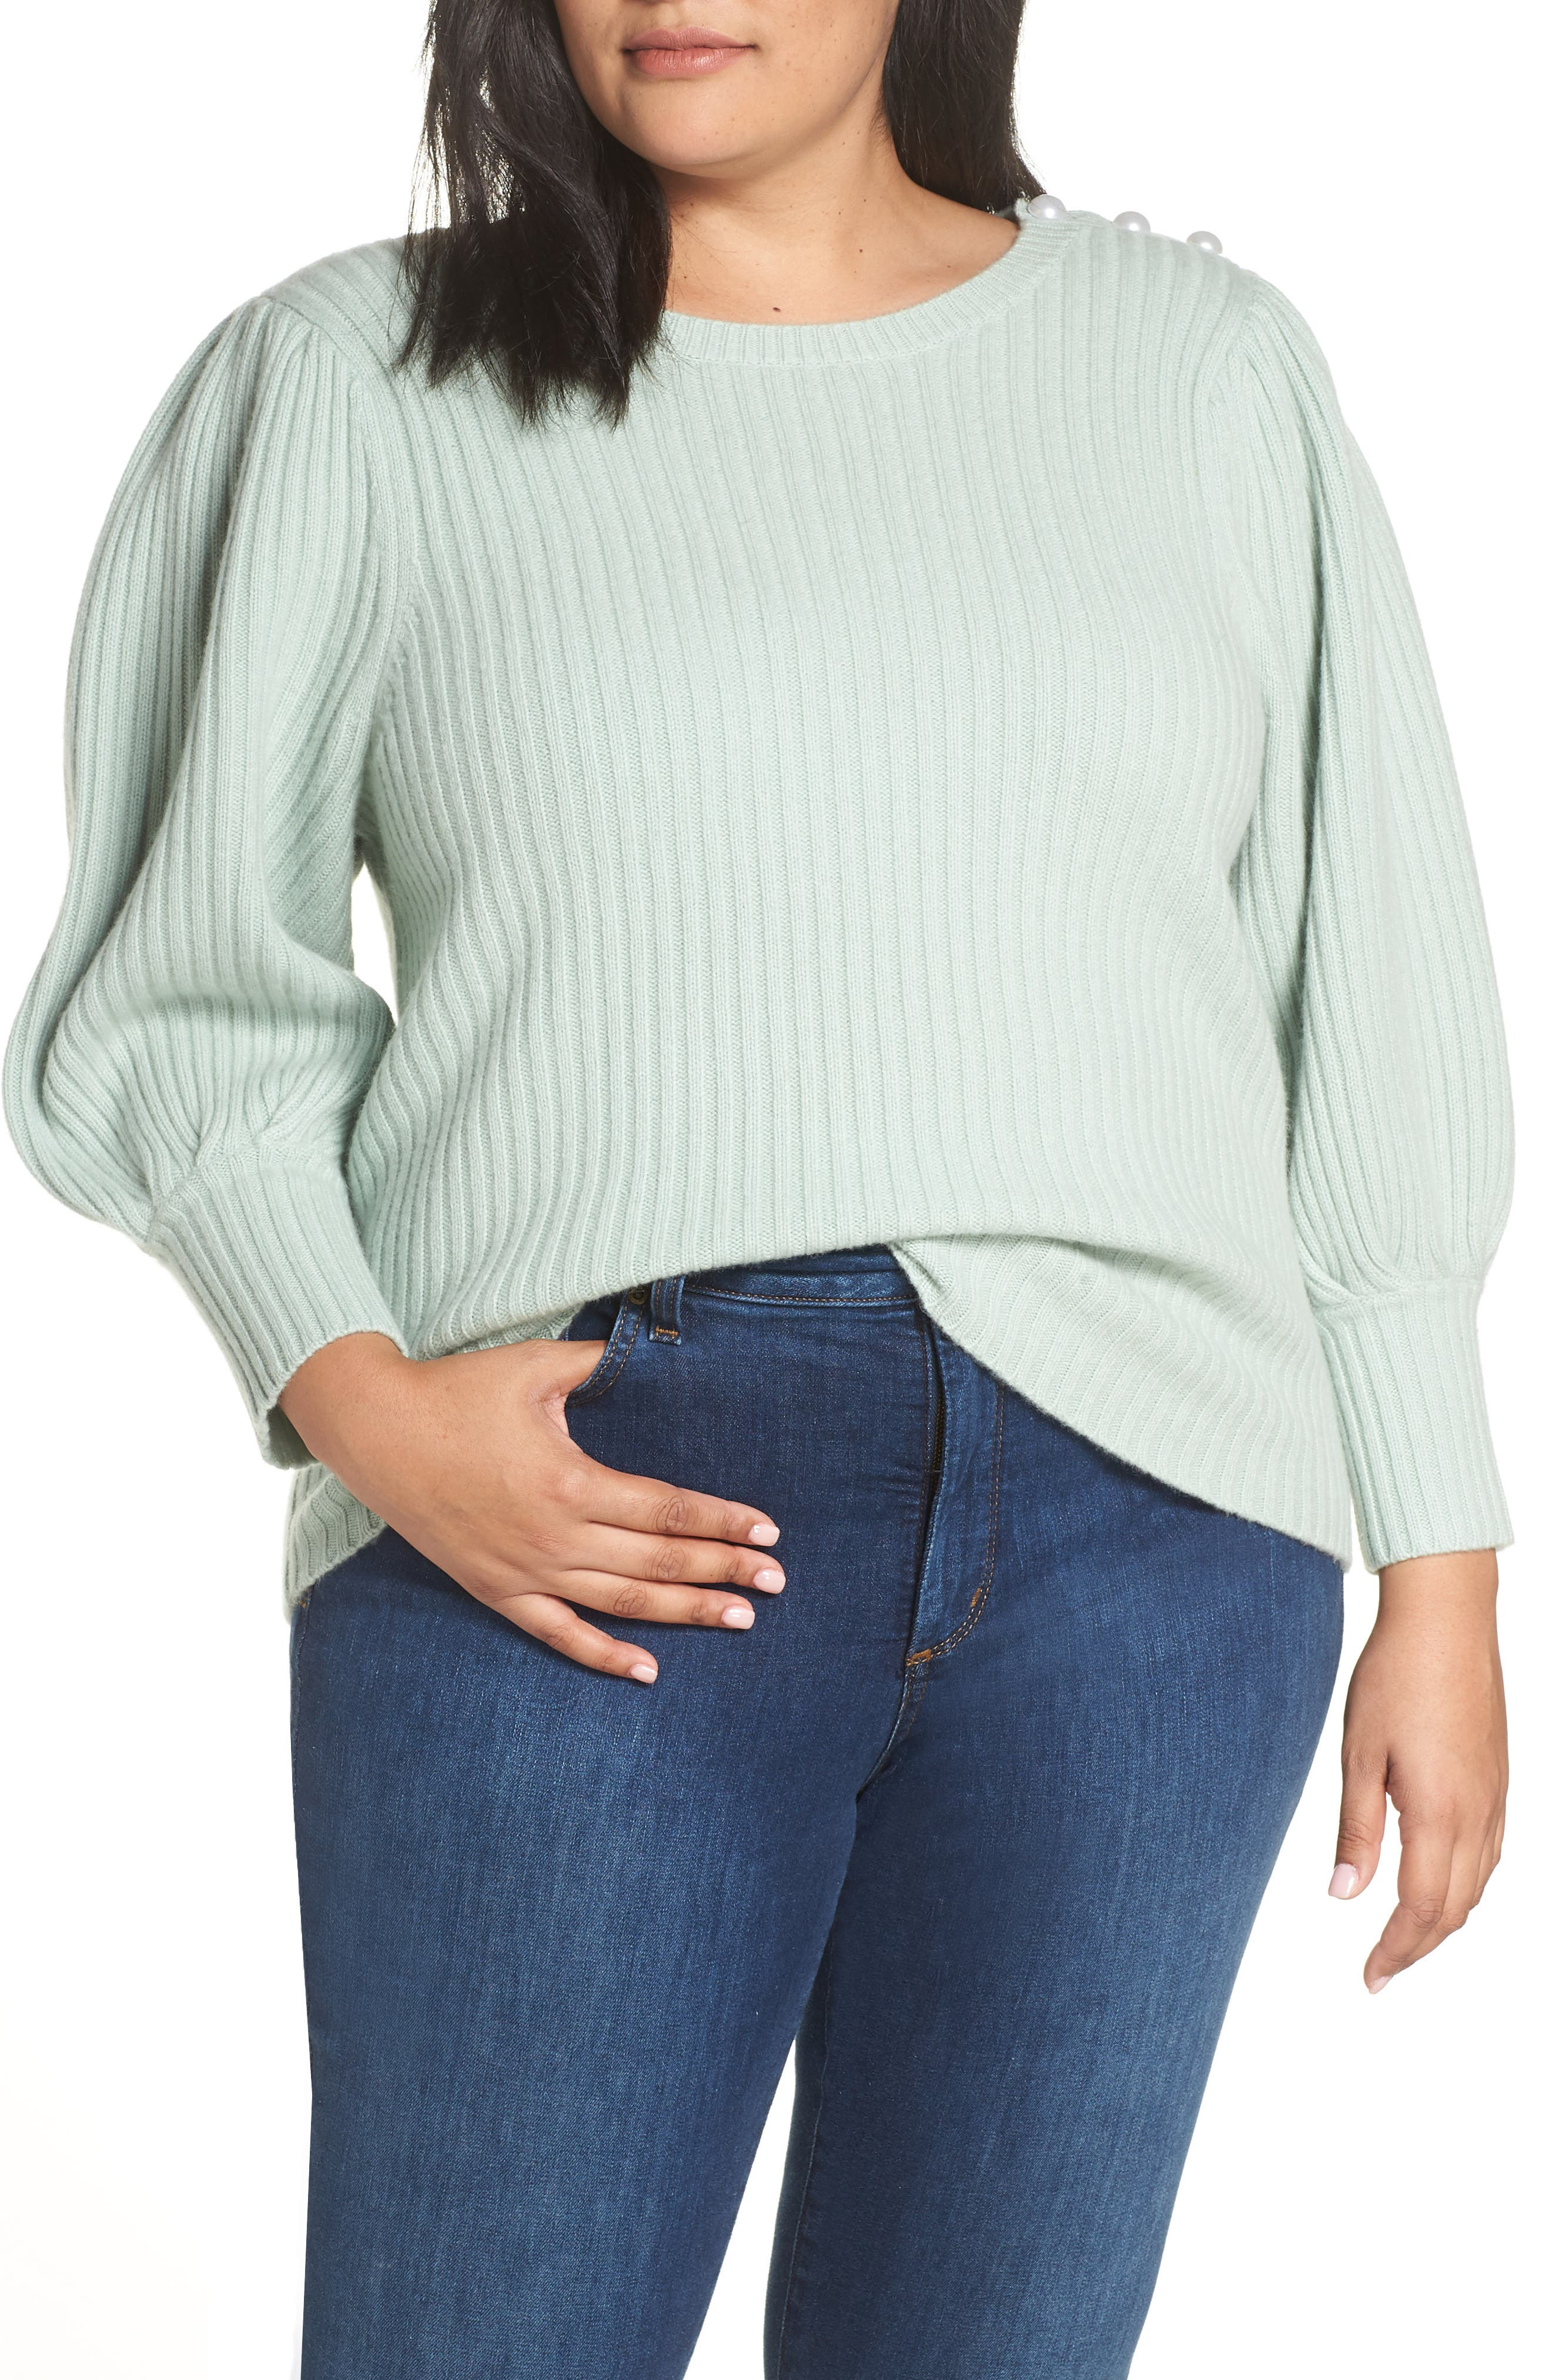 x Atlantic-Pacific Balloon Sleeve Wool & Cashmere Sweater,                             Main thumbnail 1, color,                             330